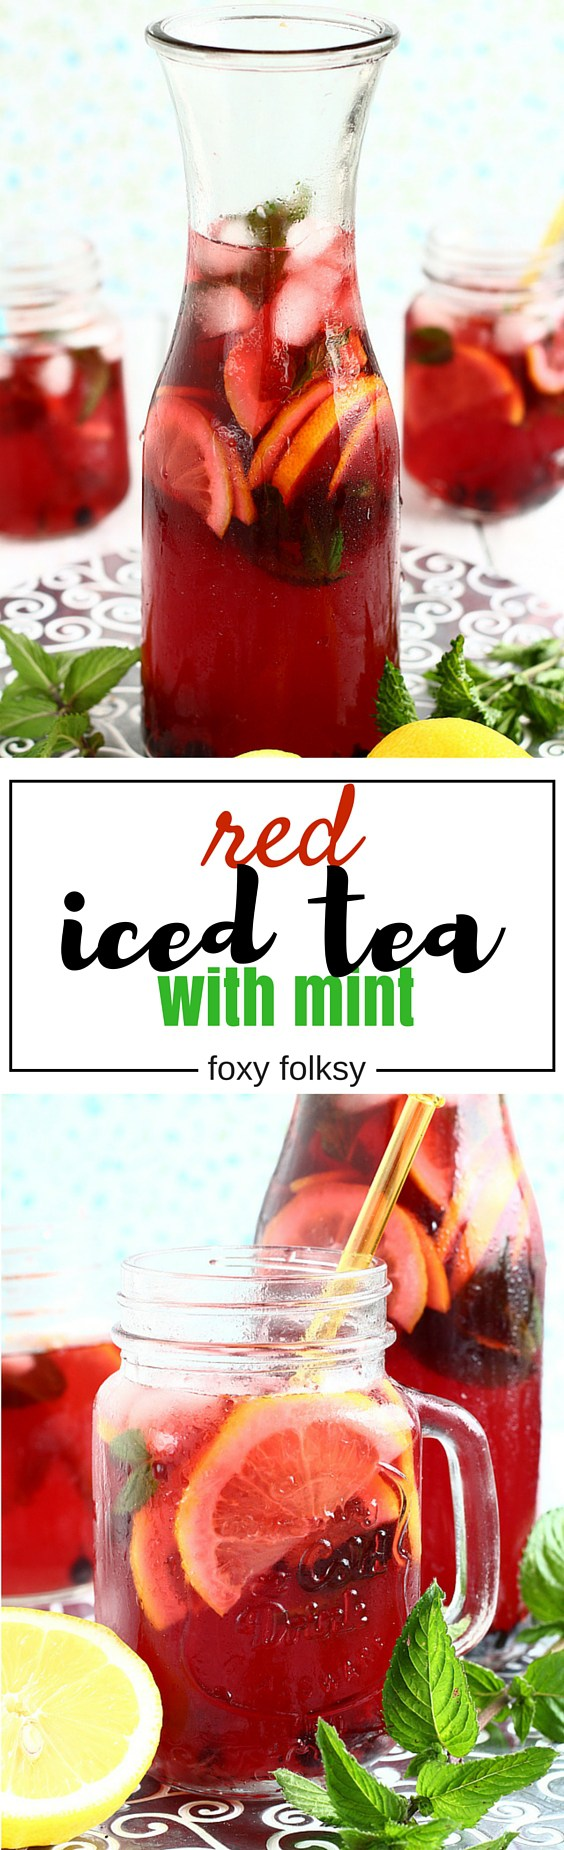 Homemade Red Iced Tea With Mint Recipe Iced Tea Recipes Homemade Iced Tea Homemade Iced Tea